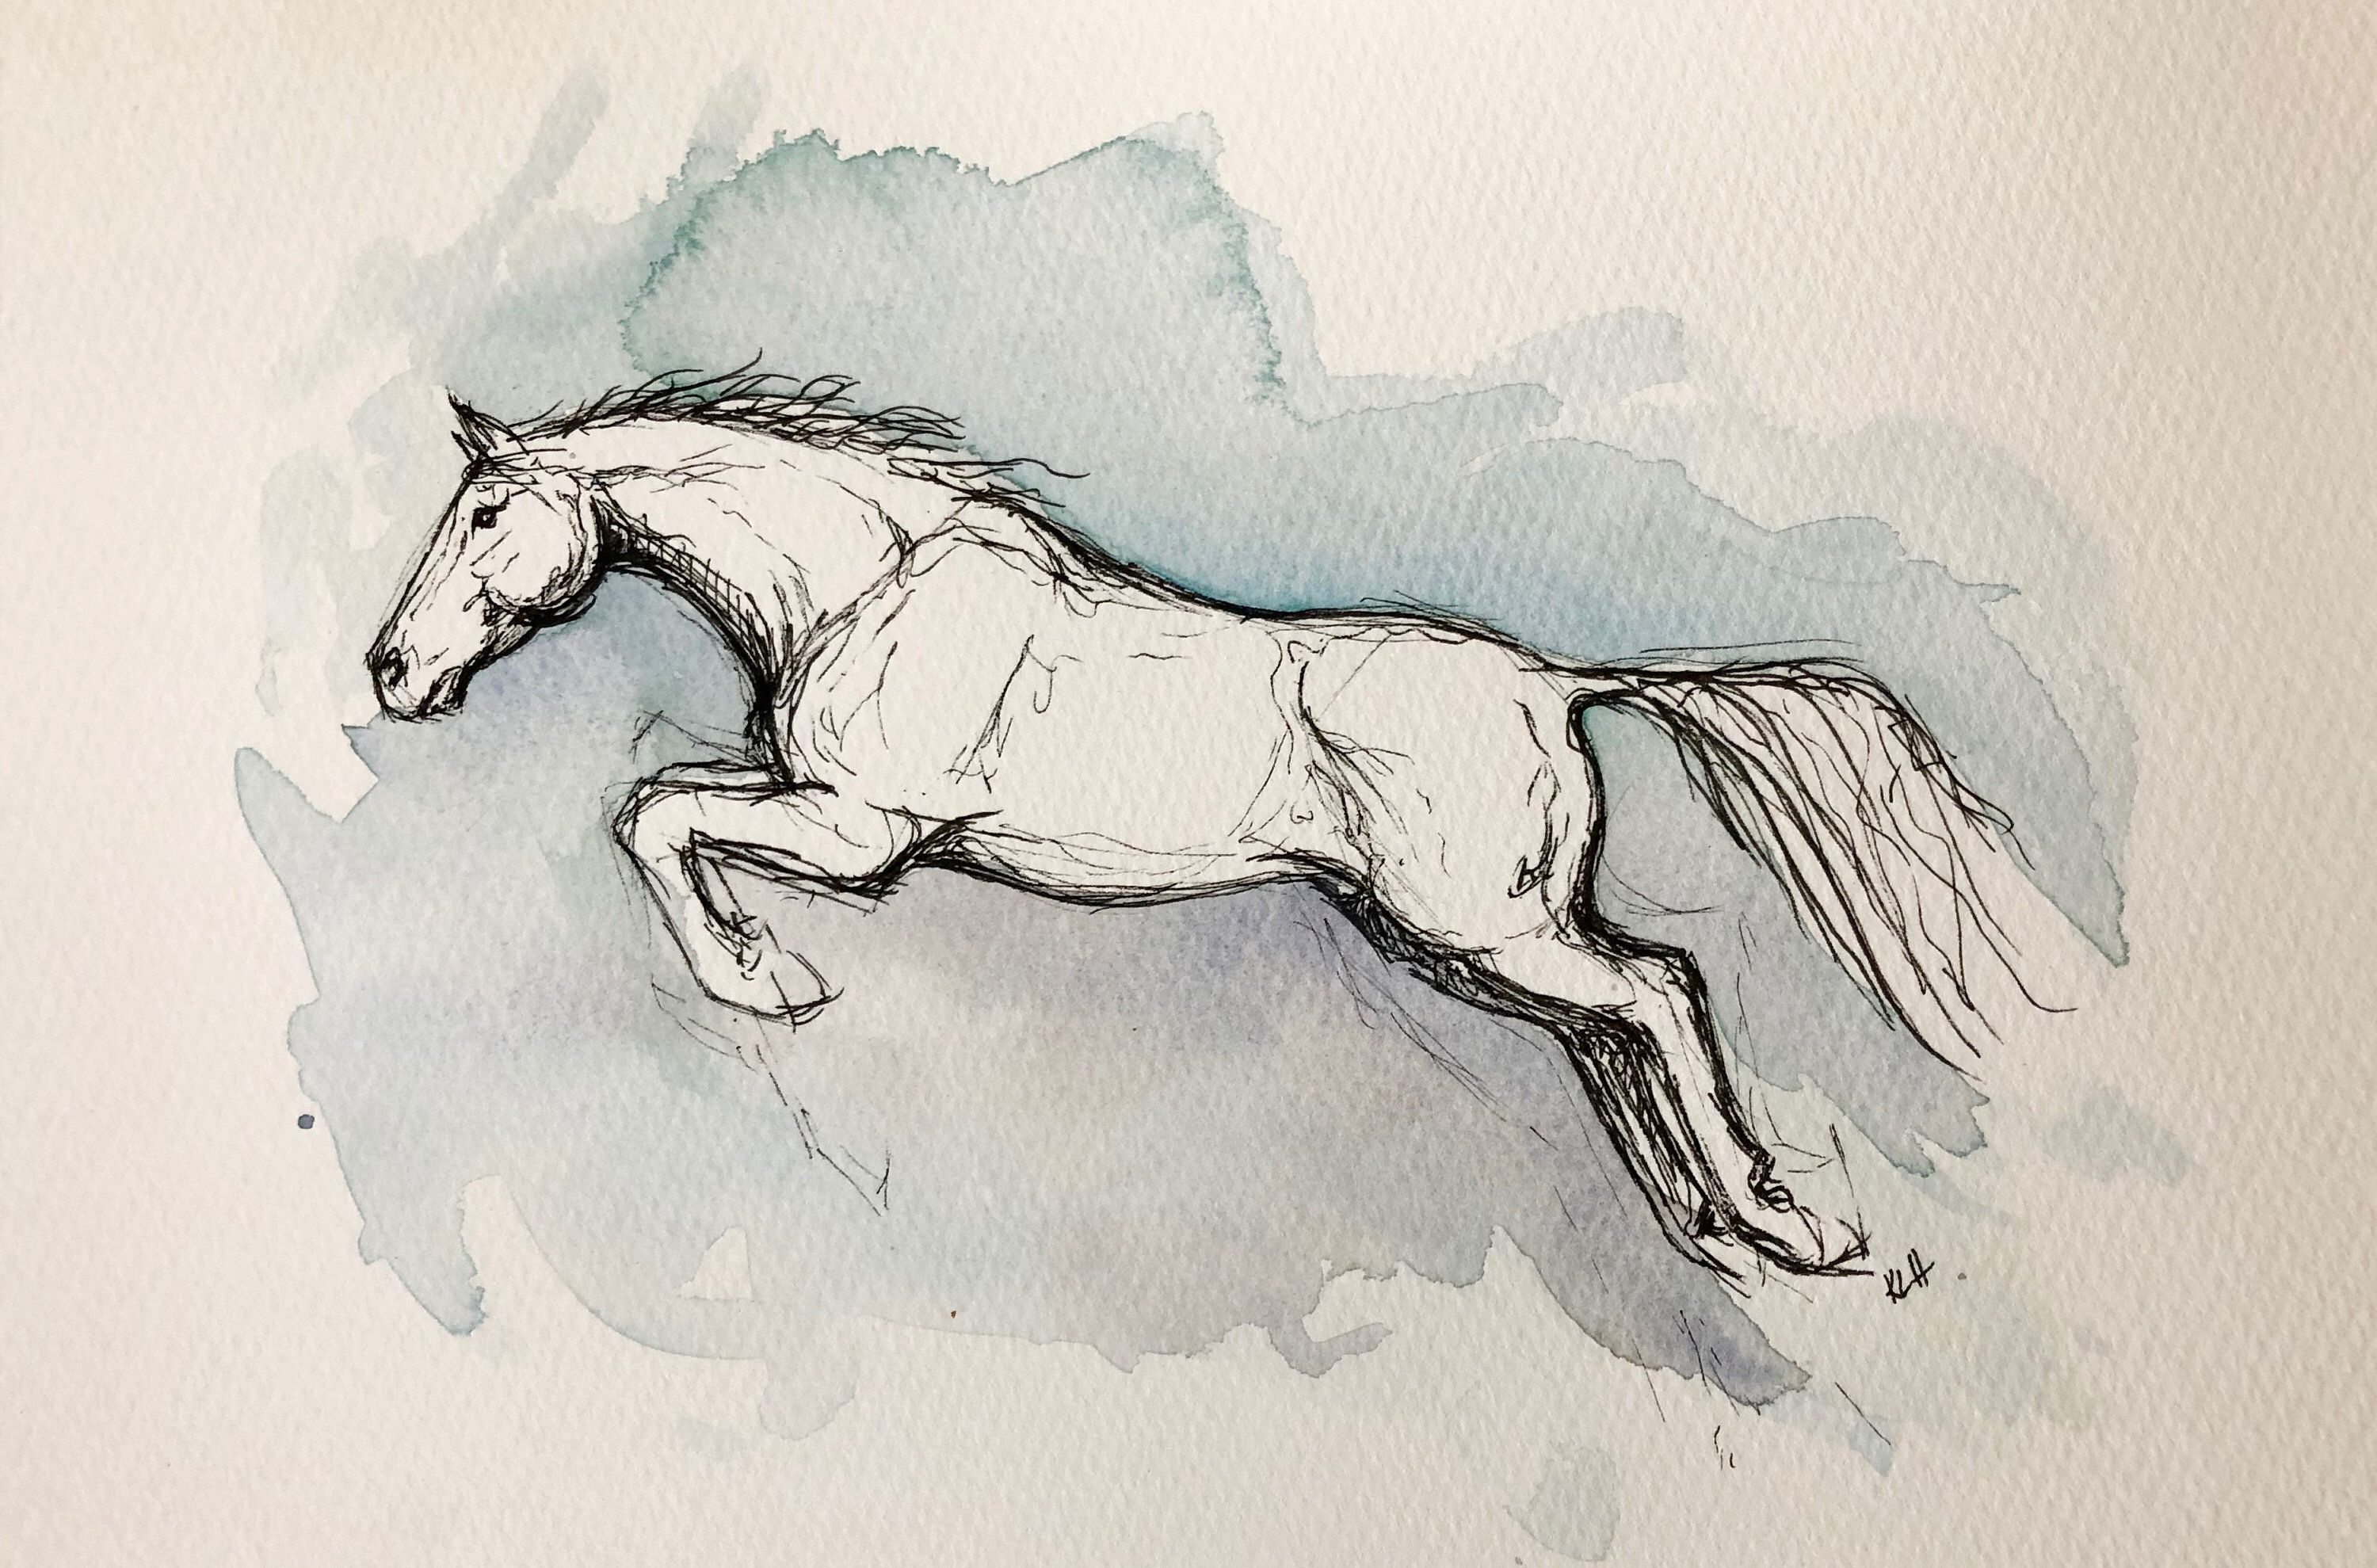 Original Watercolor And Ink Art Jumping Horse Etsy In 2020 Horse Drawings Horse Sketch Watercolor Horse